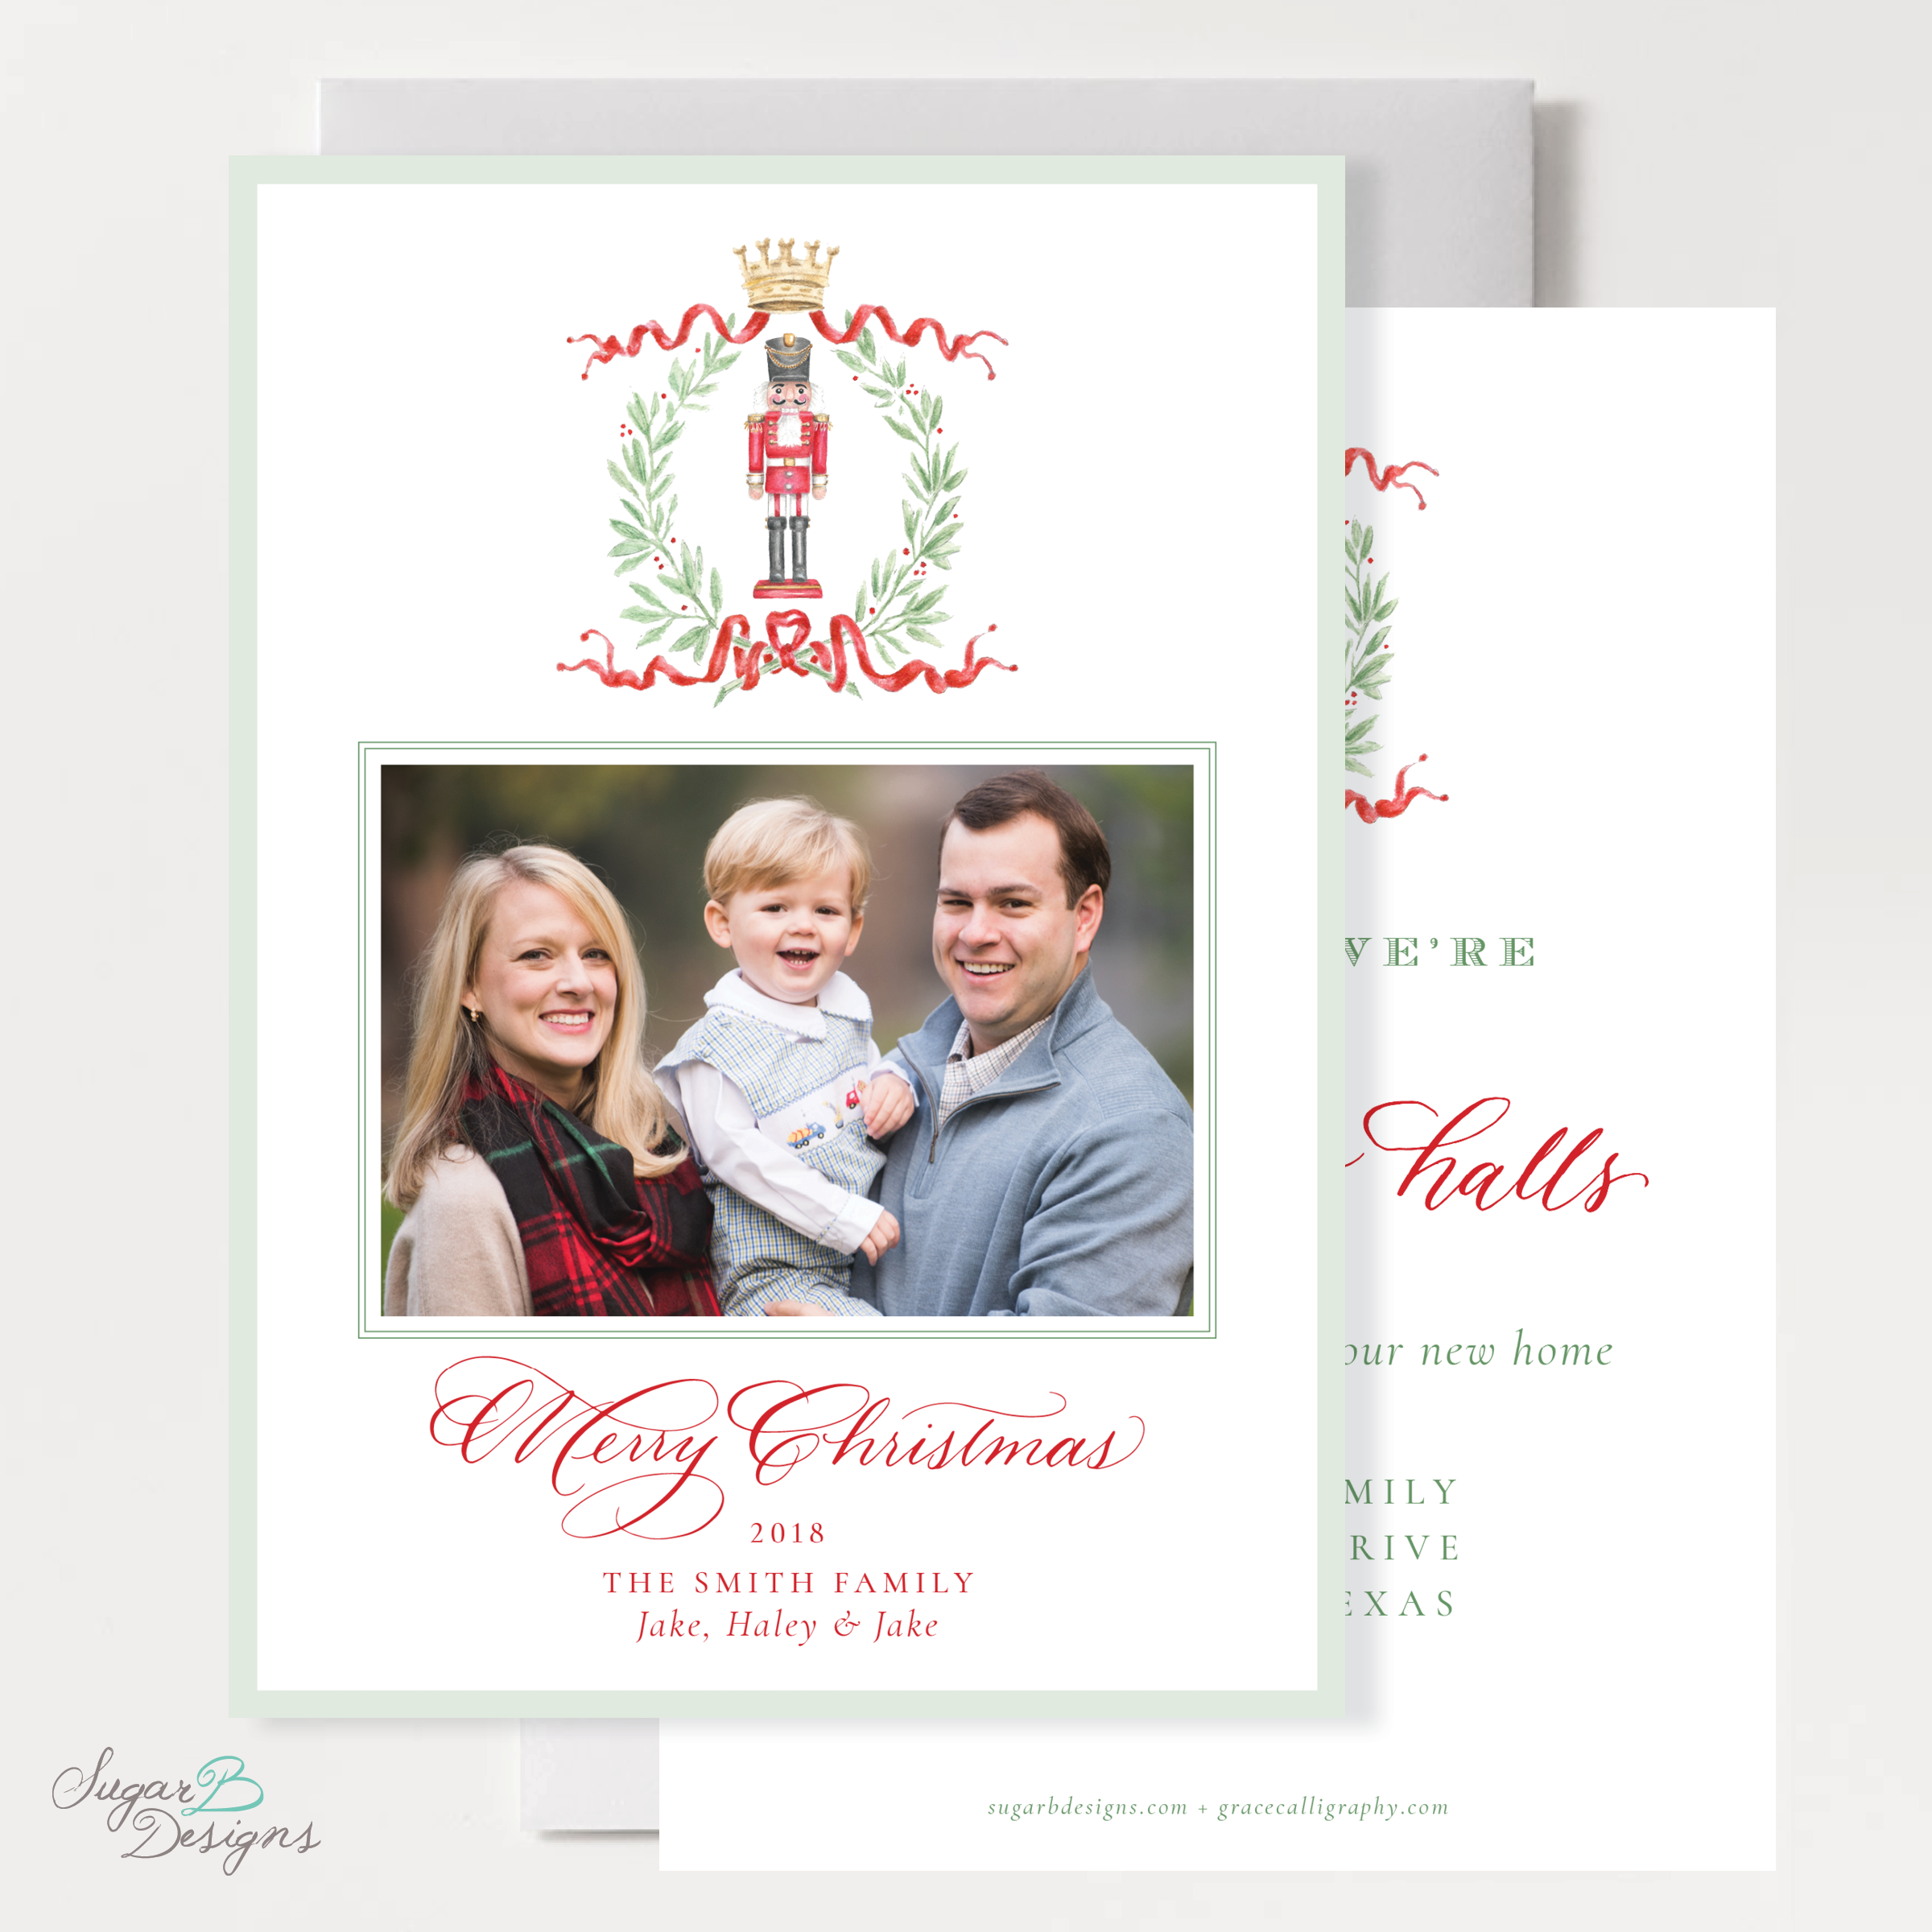 Nutcracker Royal Wreath Change of Address front + back Christmas Card by Sugar B Designs.png